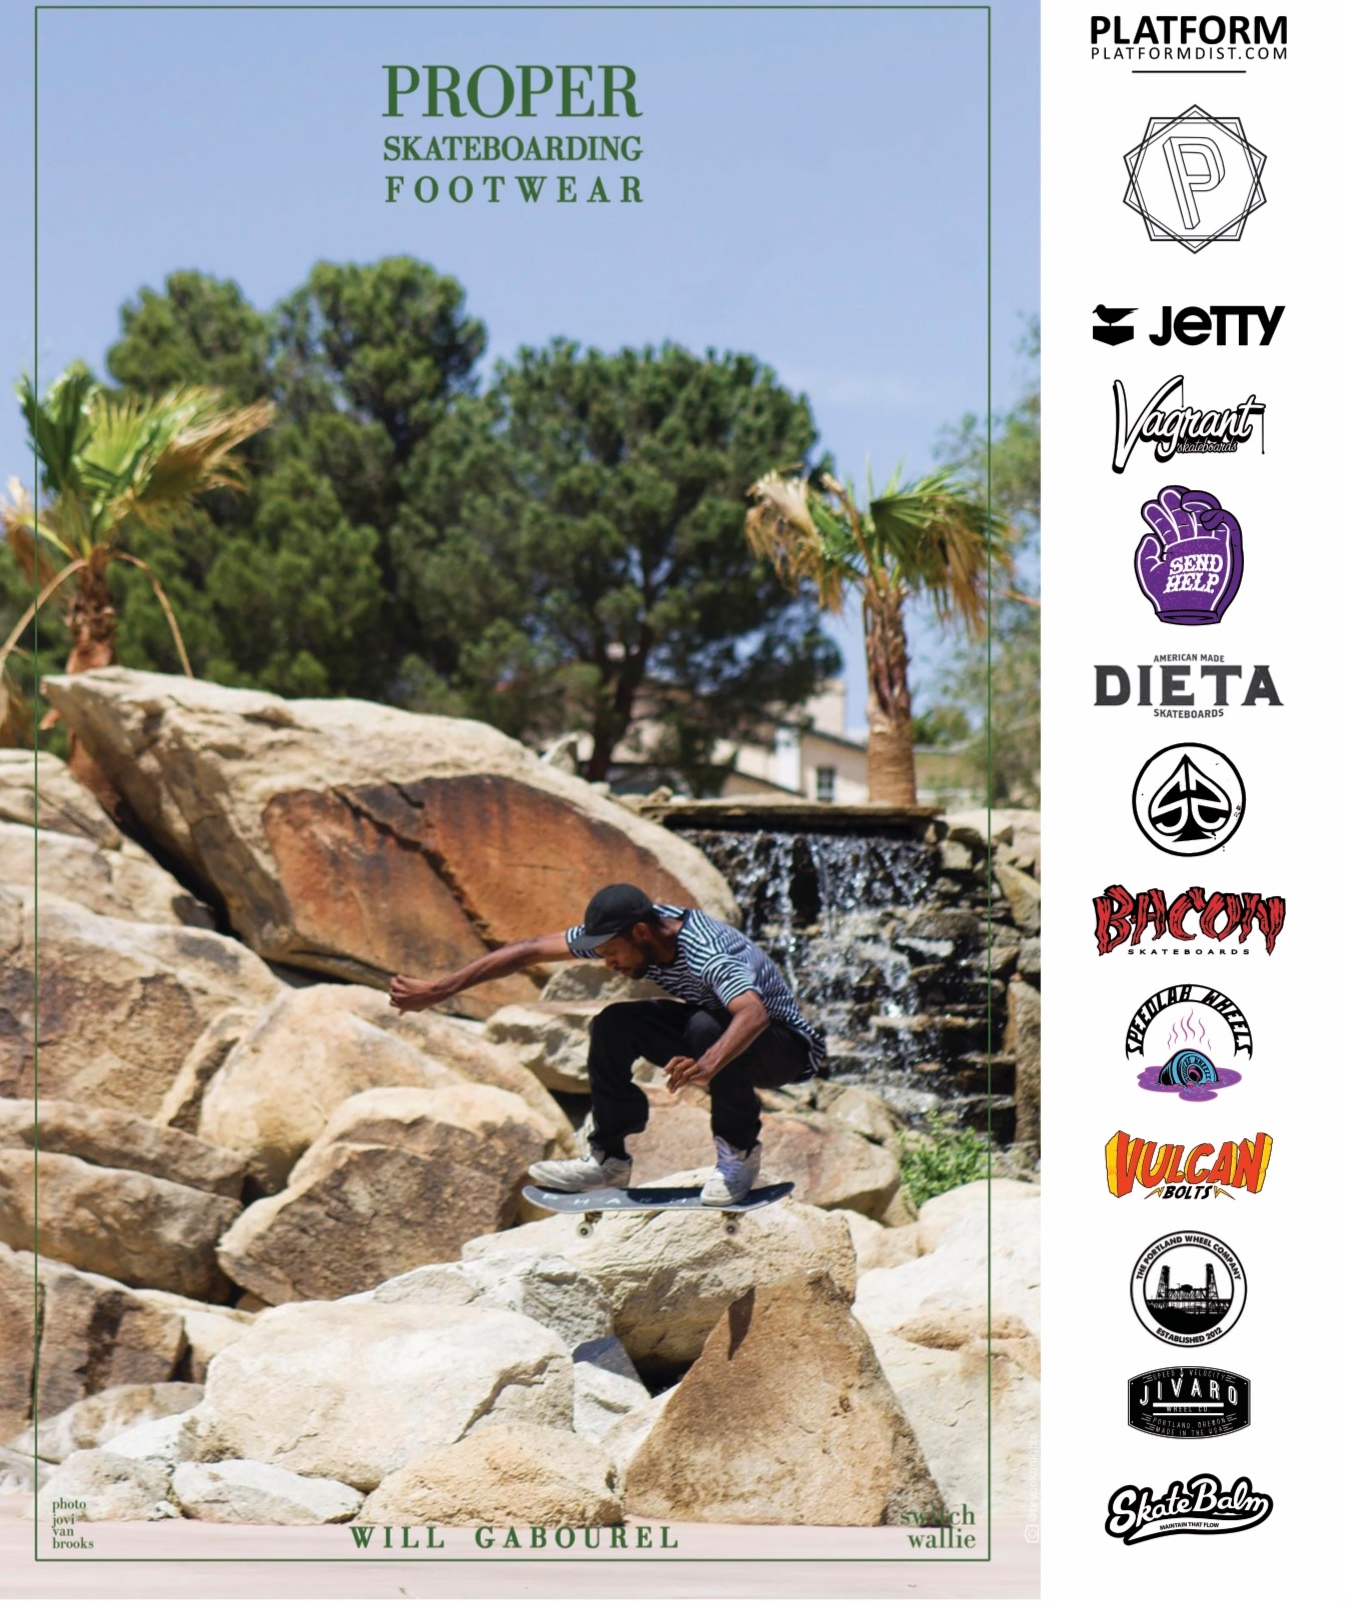 Proper Footwear ad feat Will Gabourel in SBC Skateboard